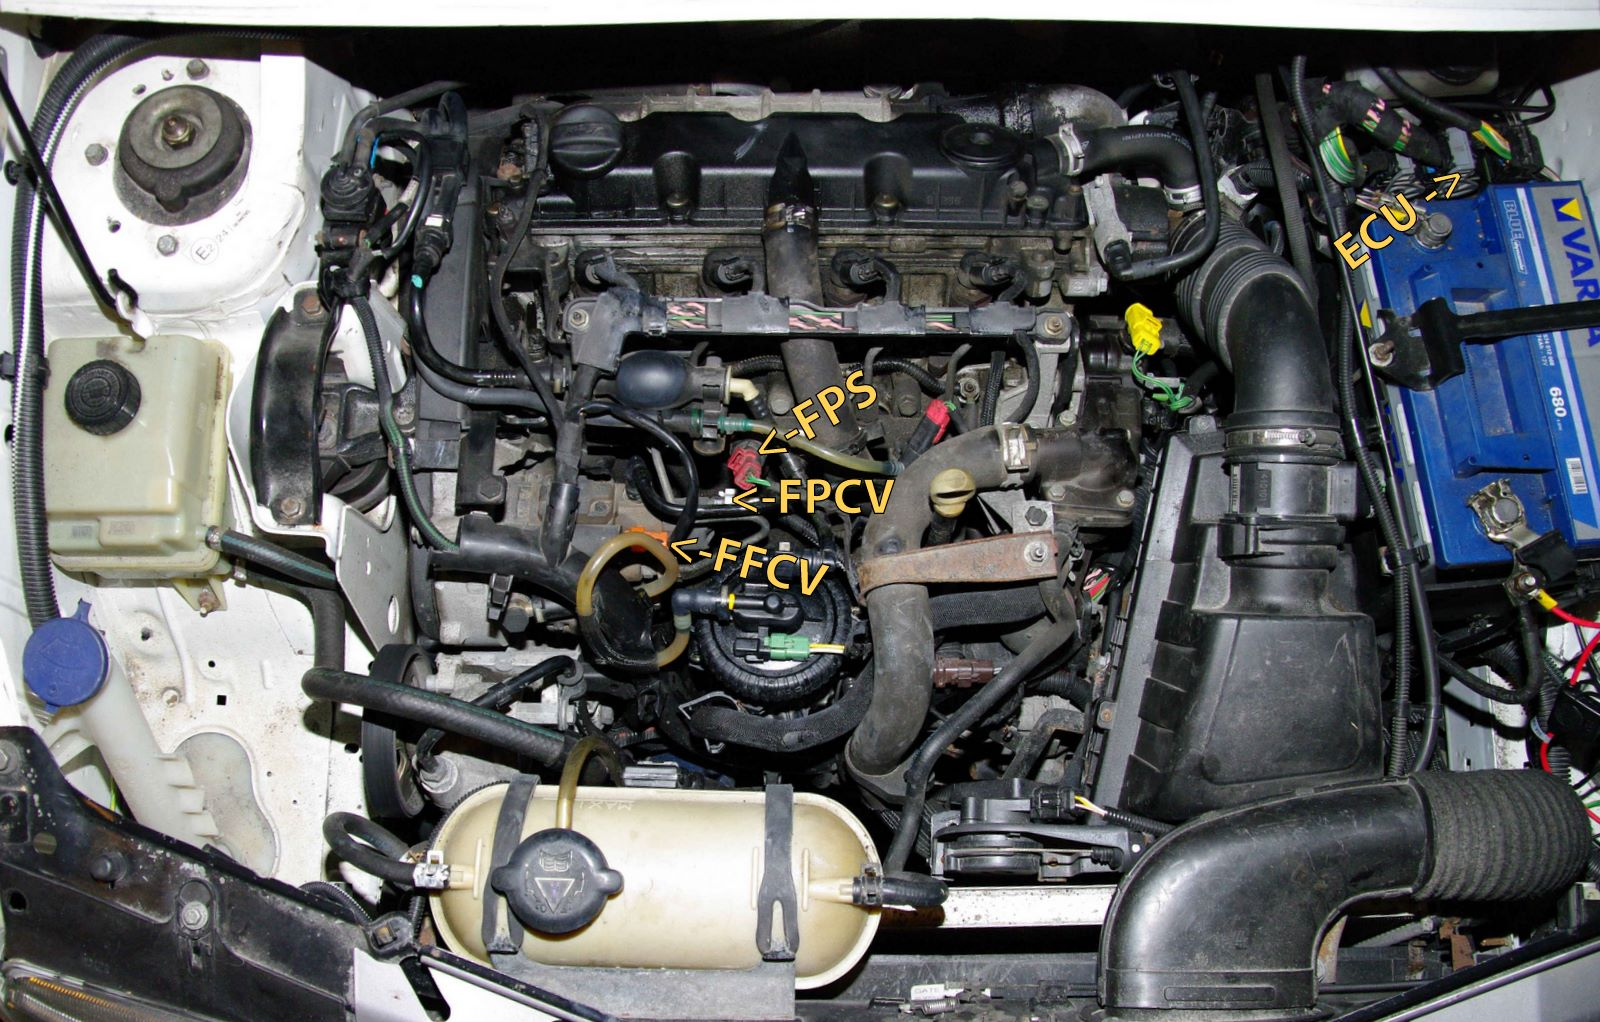 CITROEN 3 engine